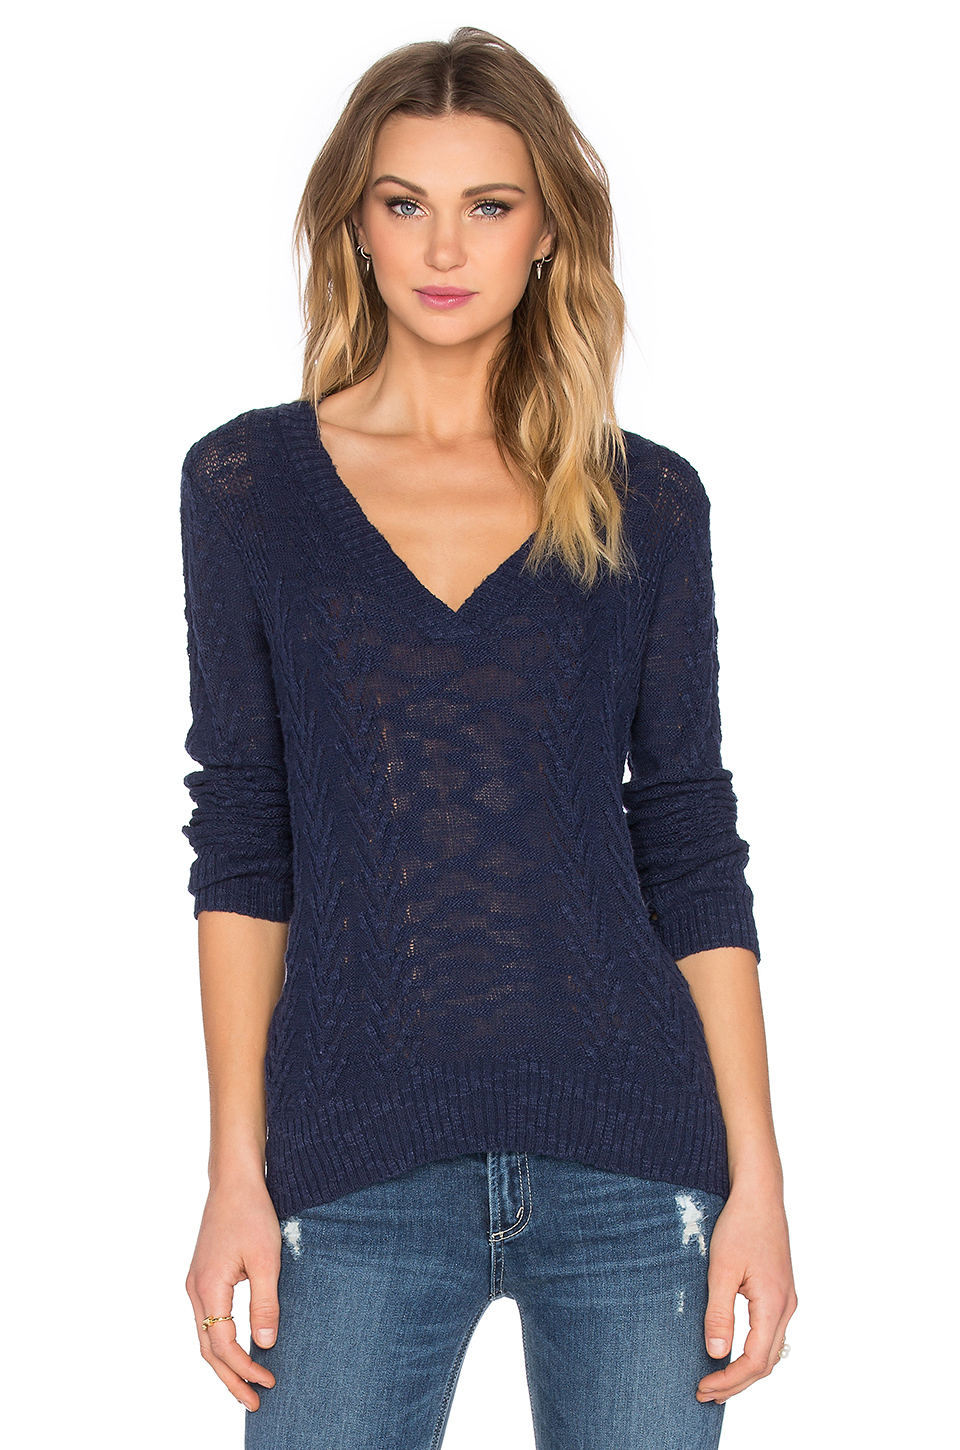 Get the best deals on thumbhole sweaters and save up to 70% off at Poshmark now! Whatever you're shopping for, we've got it.